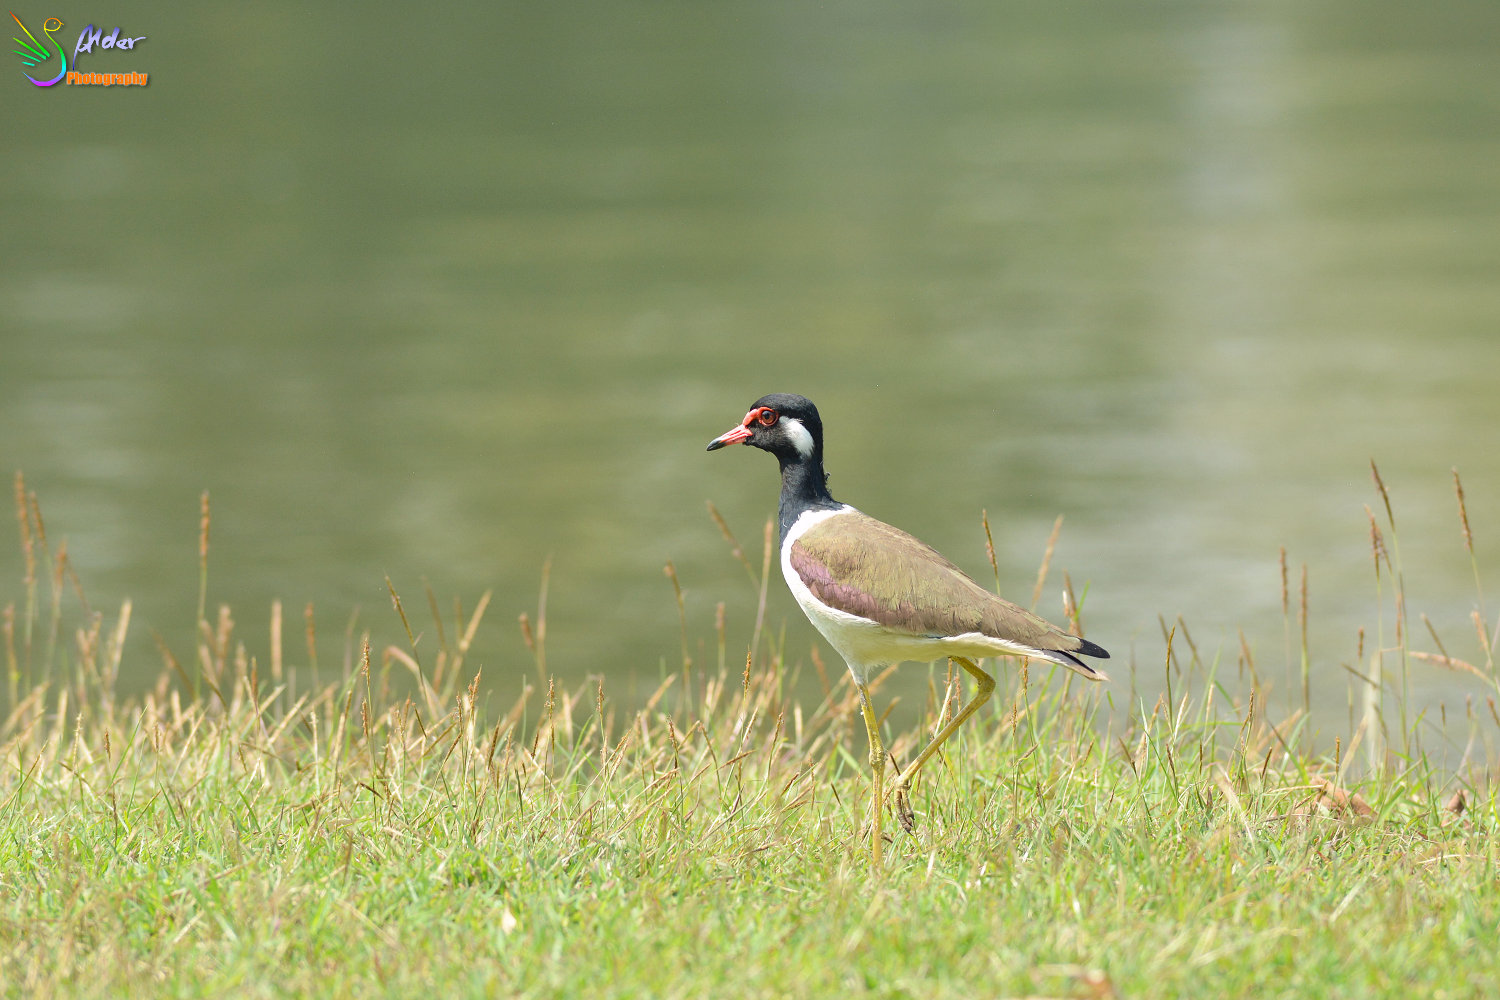 Red-wattled_Lapwing_9631_IJFR